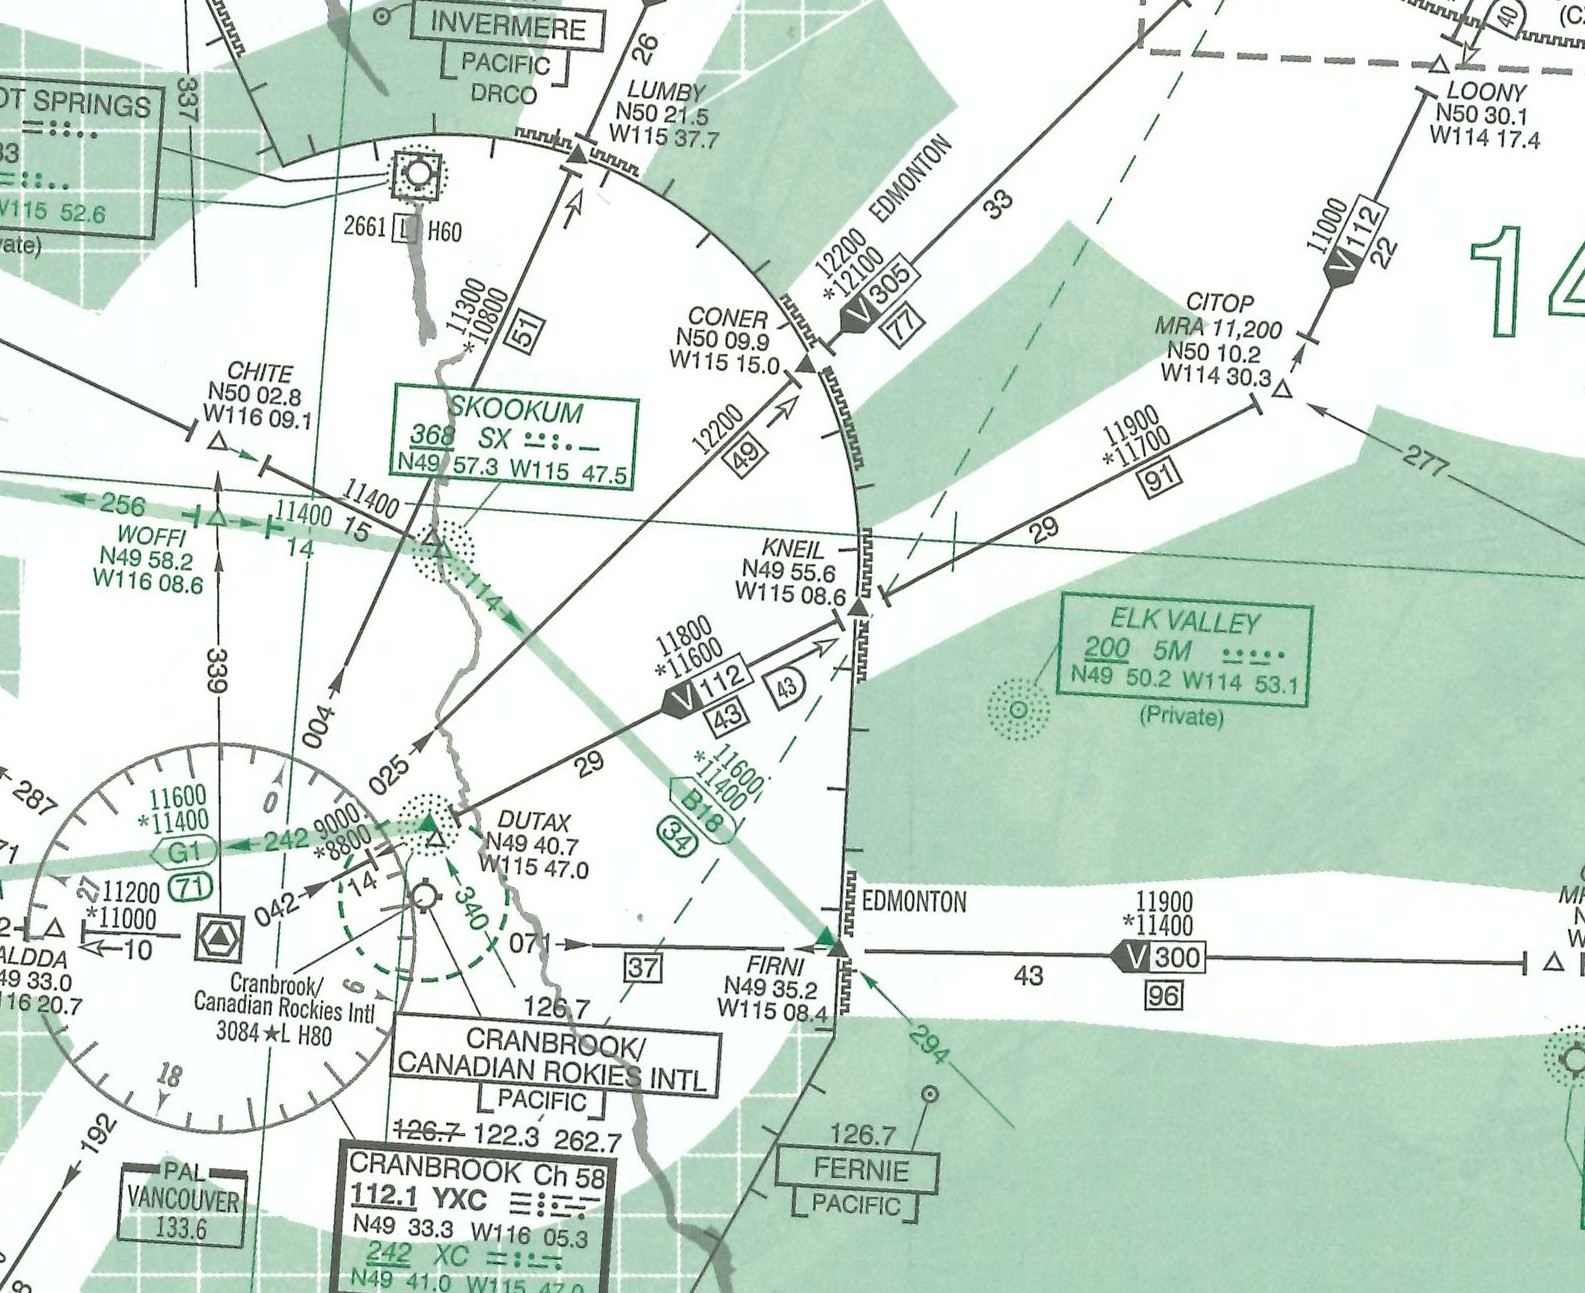 Low En Route Chart.  Langley Flying School.